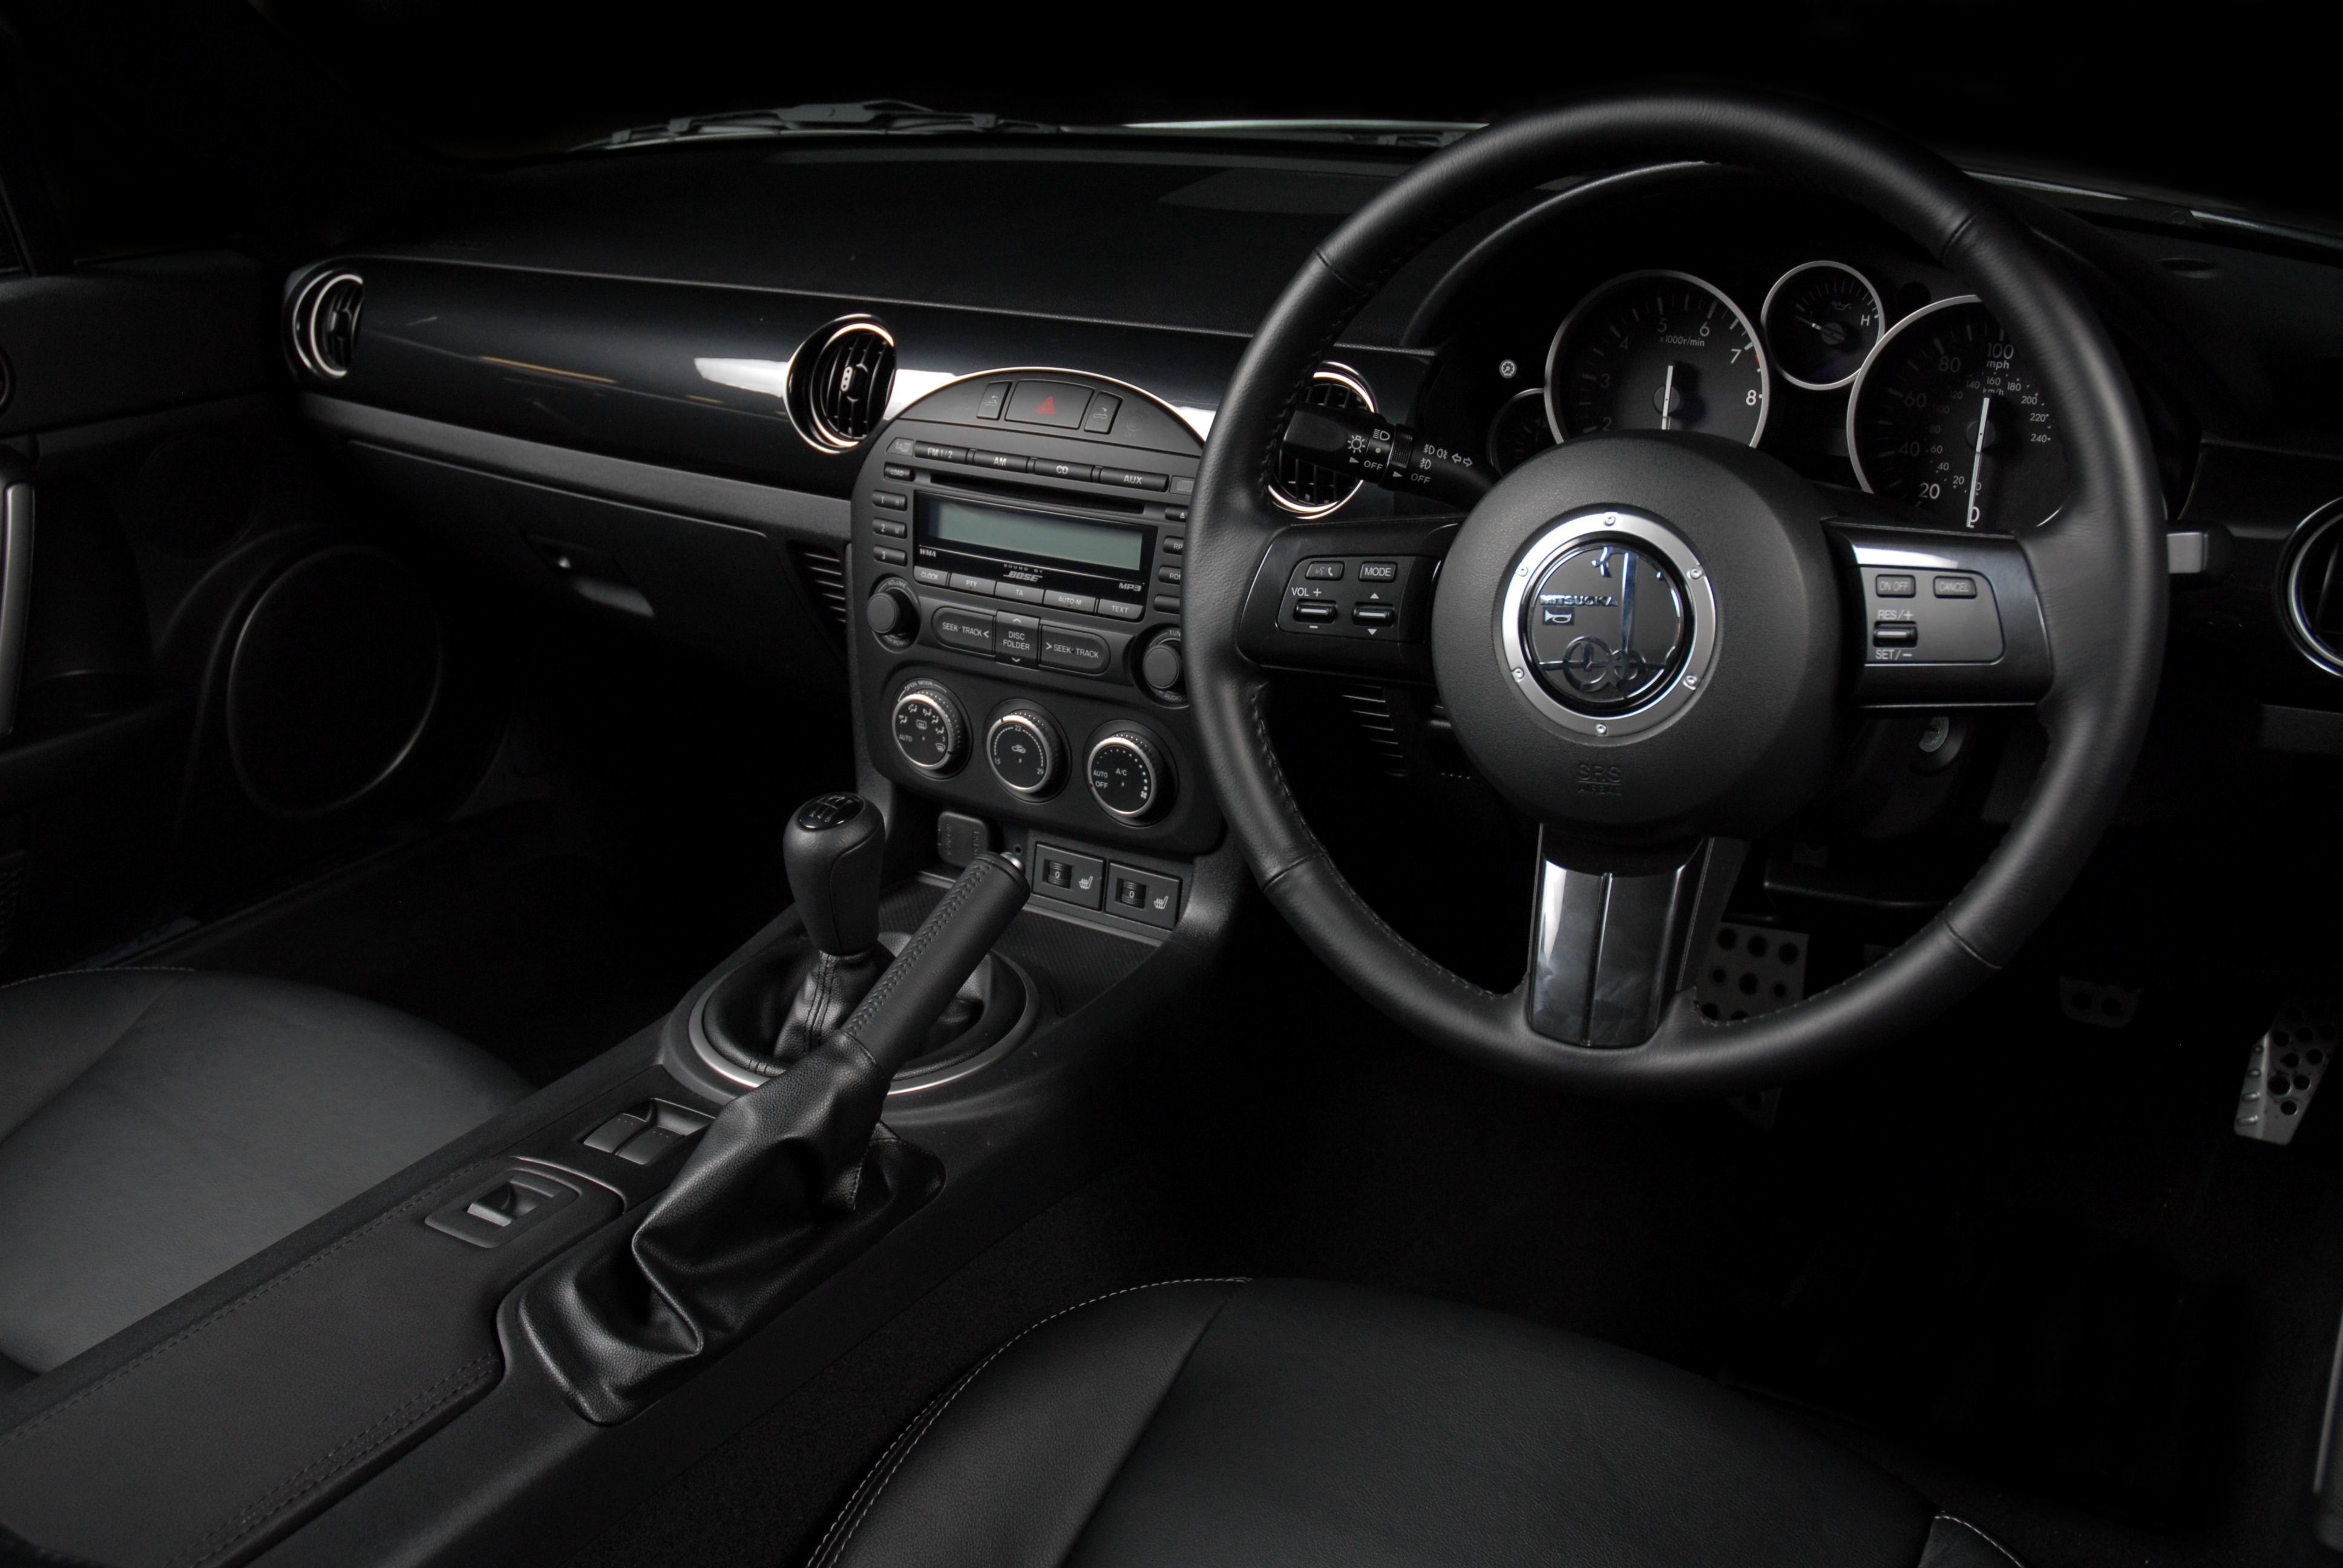 Mitsuoka Roadster UK Specification Interior shot